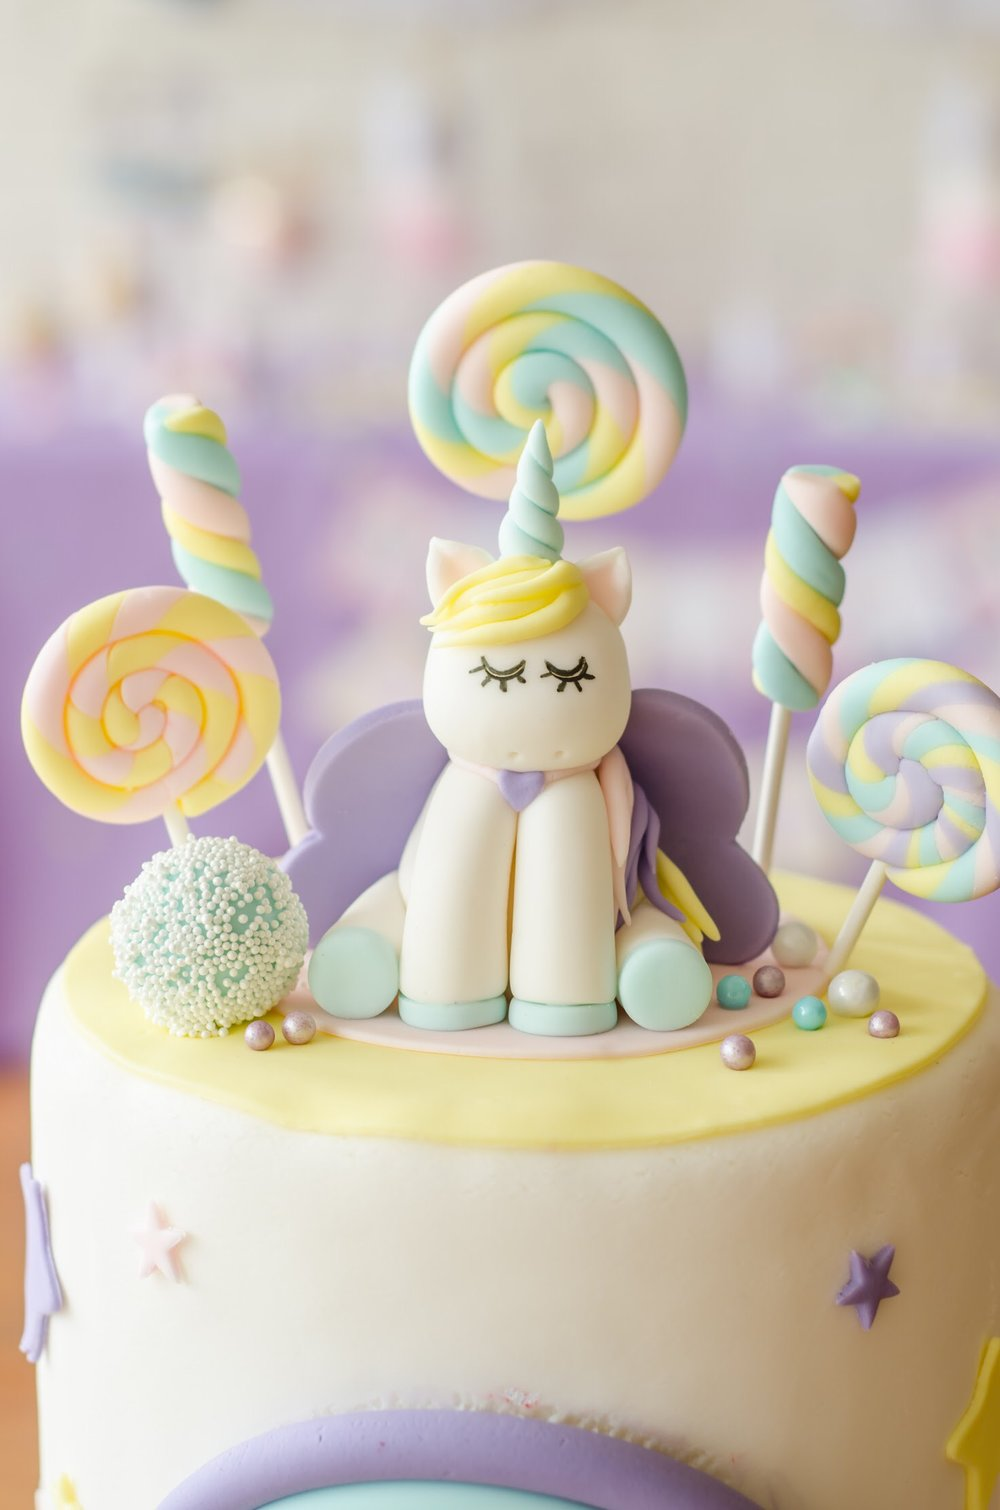 This is the cutest Unicorn Birthday Cake Topper ever! Look at those eye lashes! Come see all the Unicorn Birthday Party Ideas at Mint Event Design www.minteventdesign.com #unicornparty #birthdayparty #birthdaypartyideas #pastelrainbow #birthdaycake